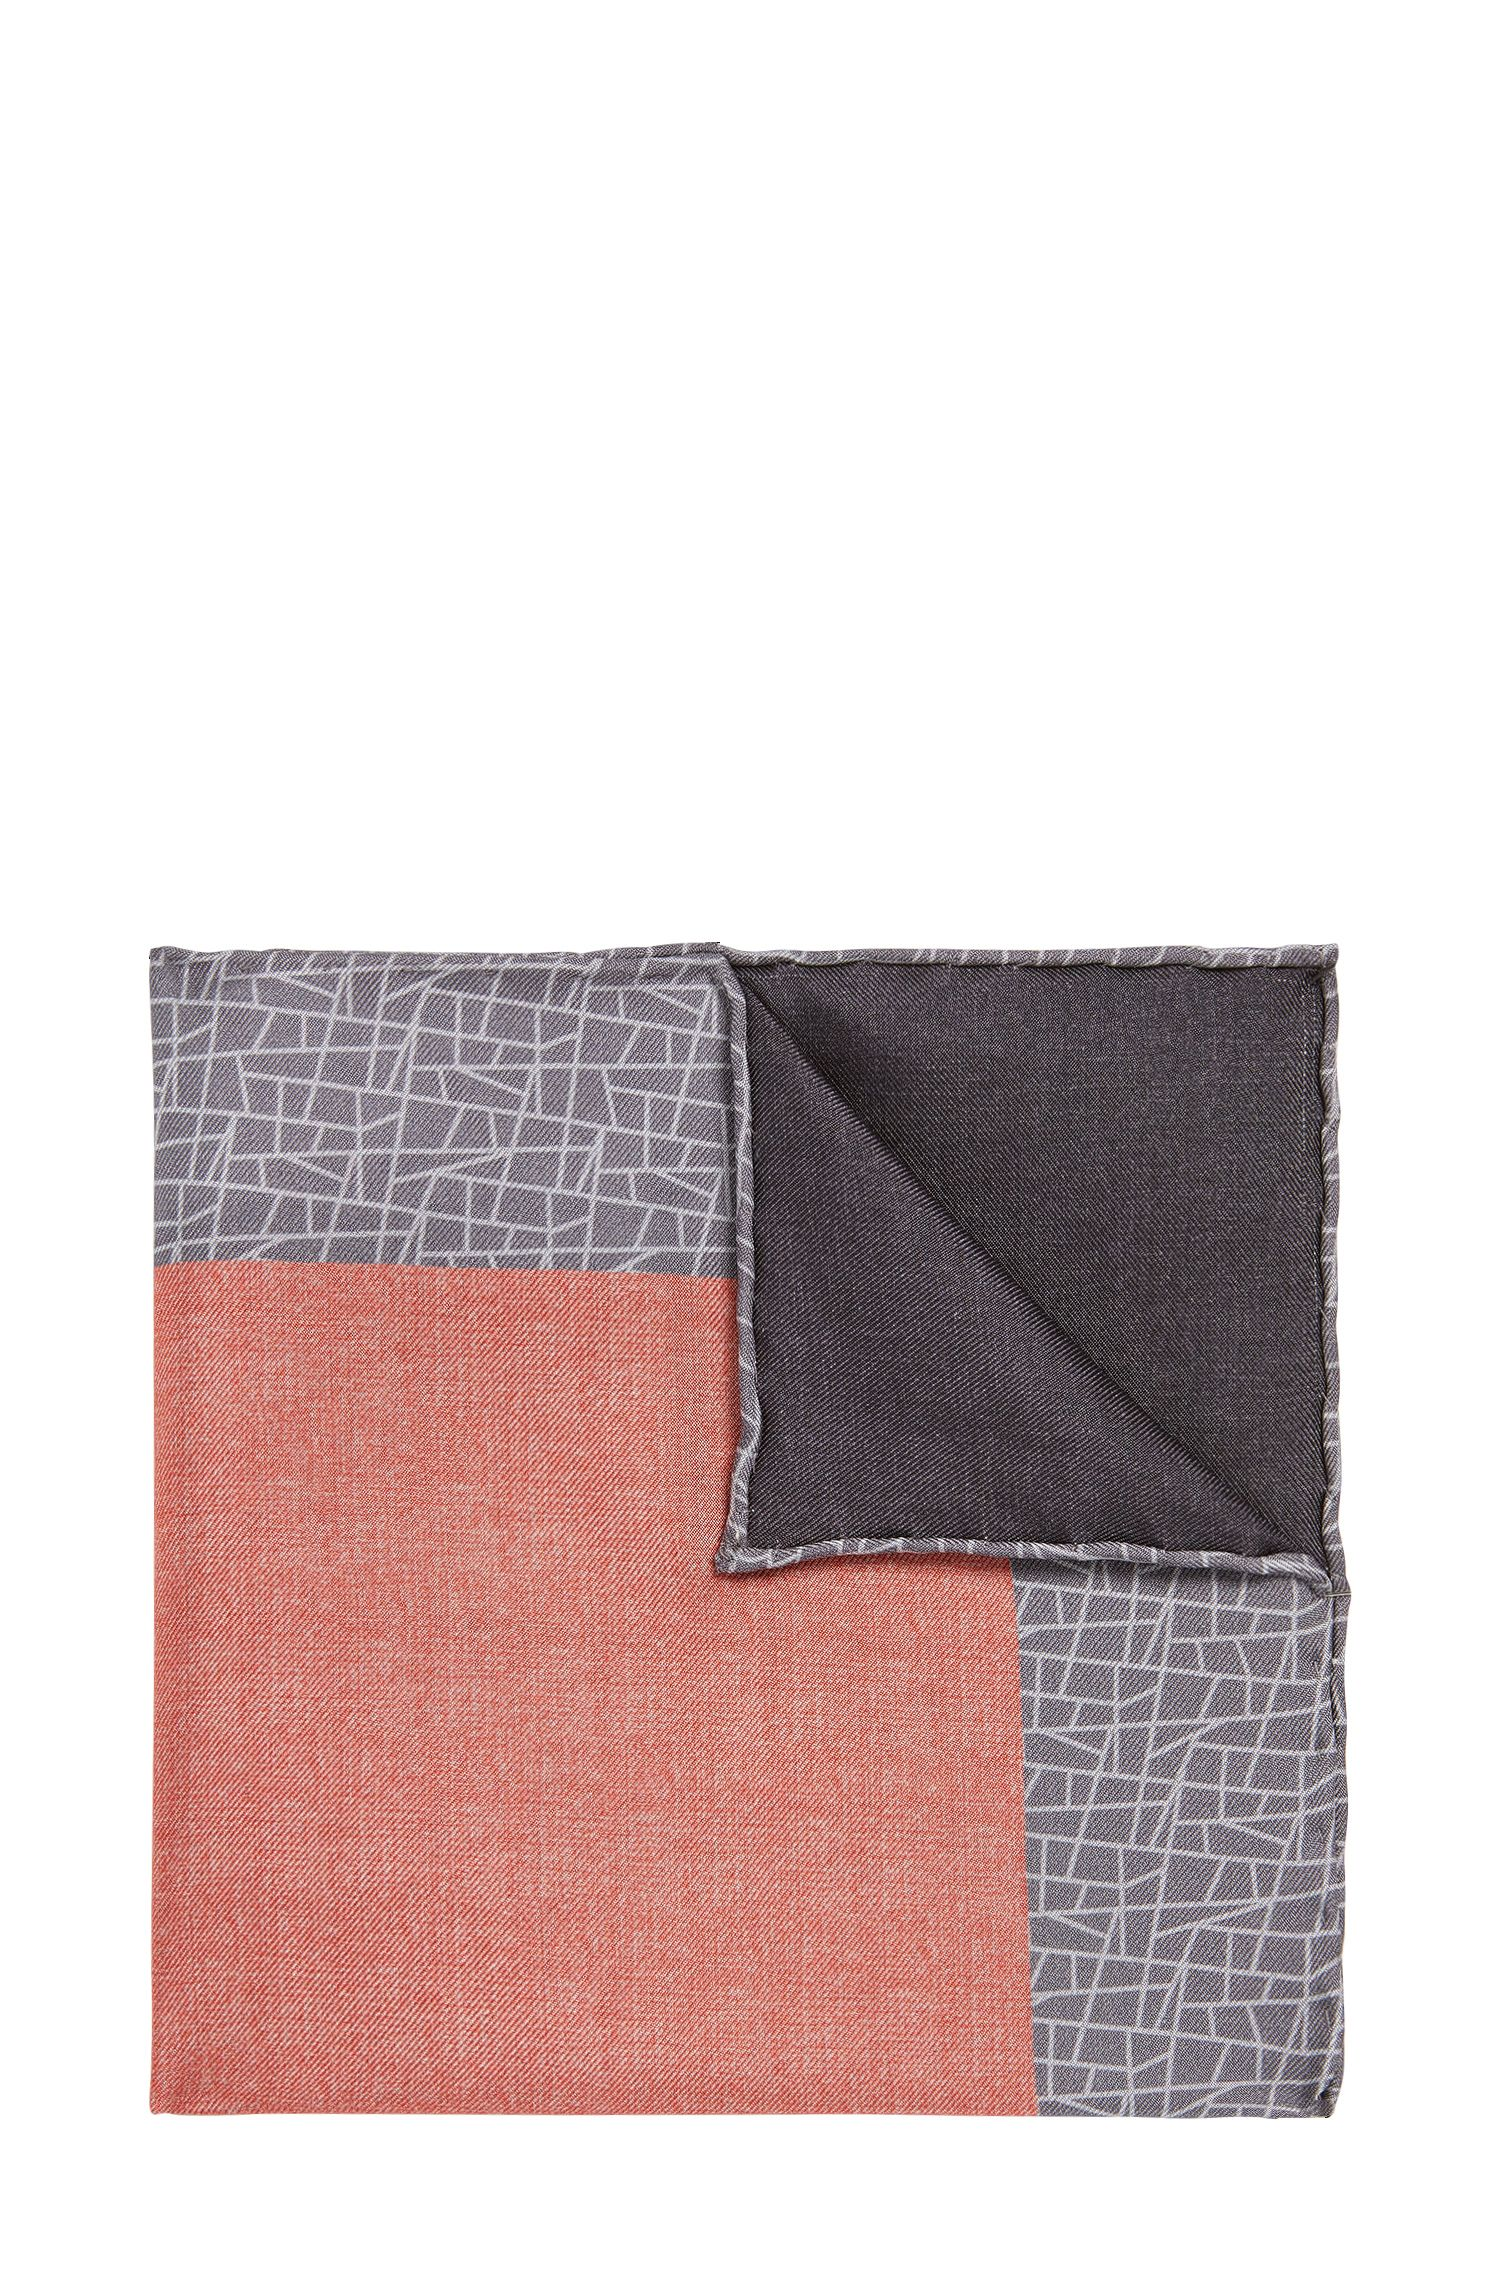 'T-Pocket sq. cm 33x33' | Italian Silk Pocket Square